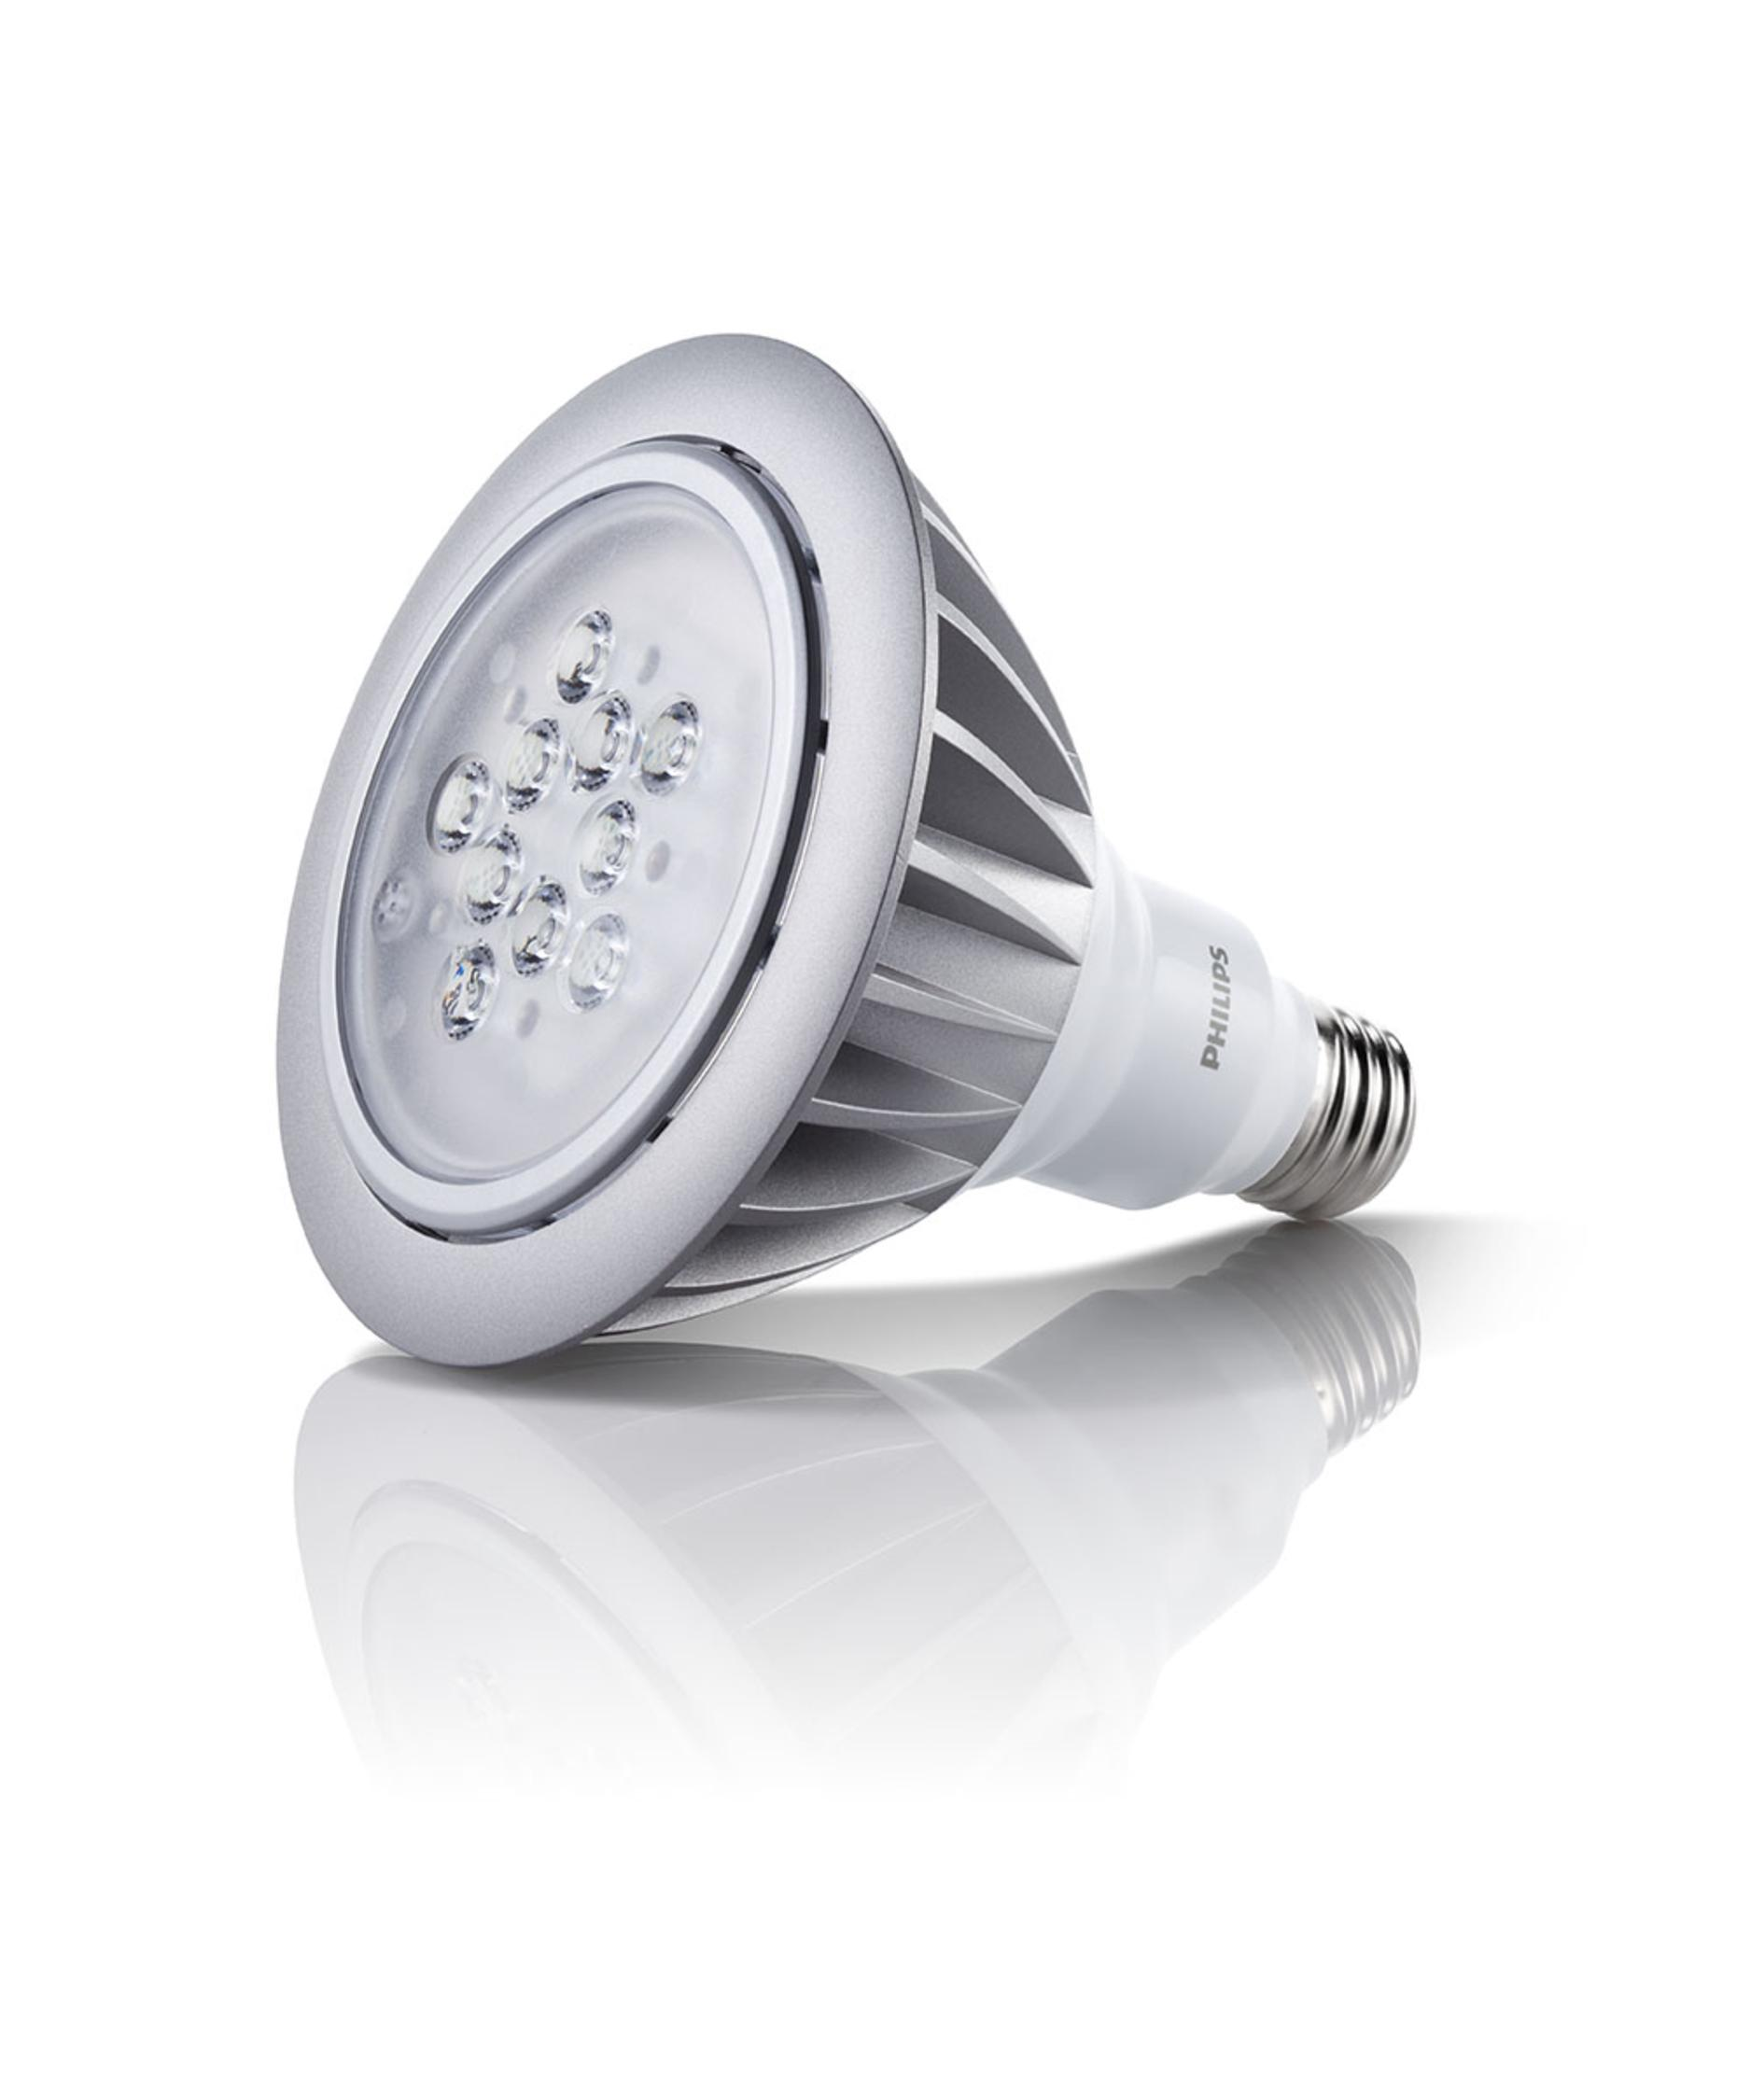 Captivating Philips 46677 422196 PAR38 16W 4200K LED Light Bulb | Capitol Lighting  1 800lighting.com